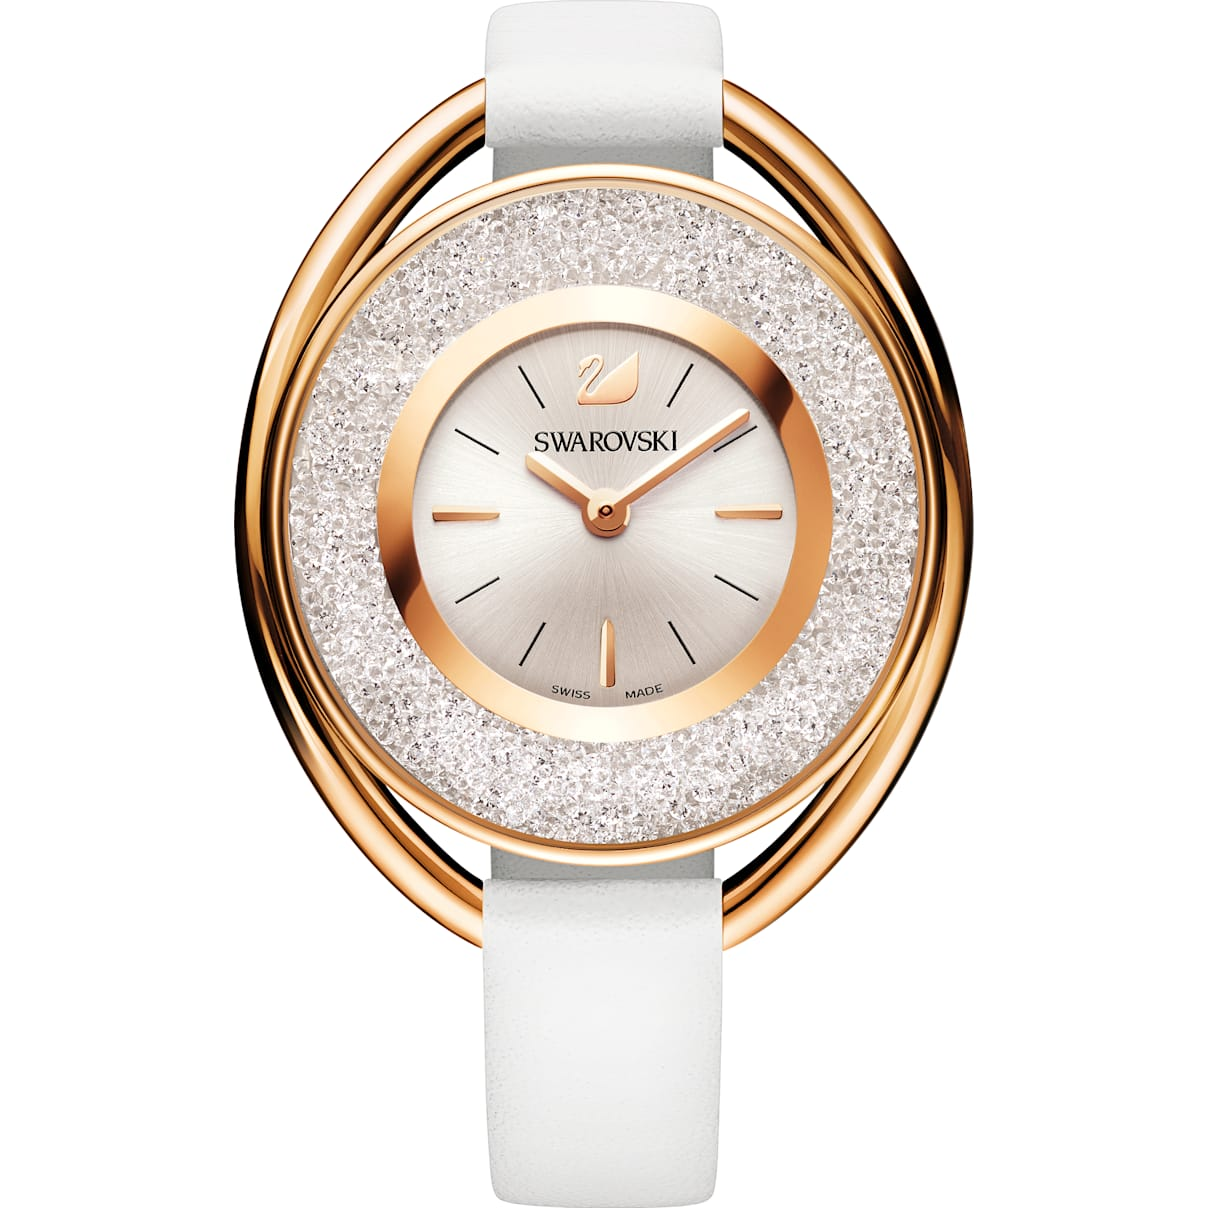 Swarovski Crystalline Oval Watch, Leather strap, White, Rose-gold tone PVD